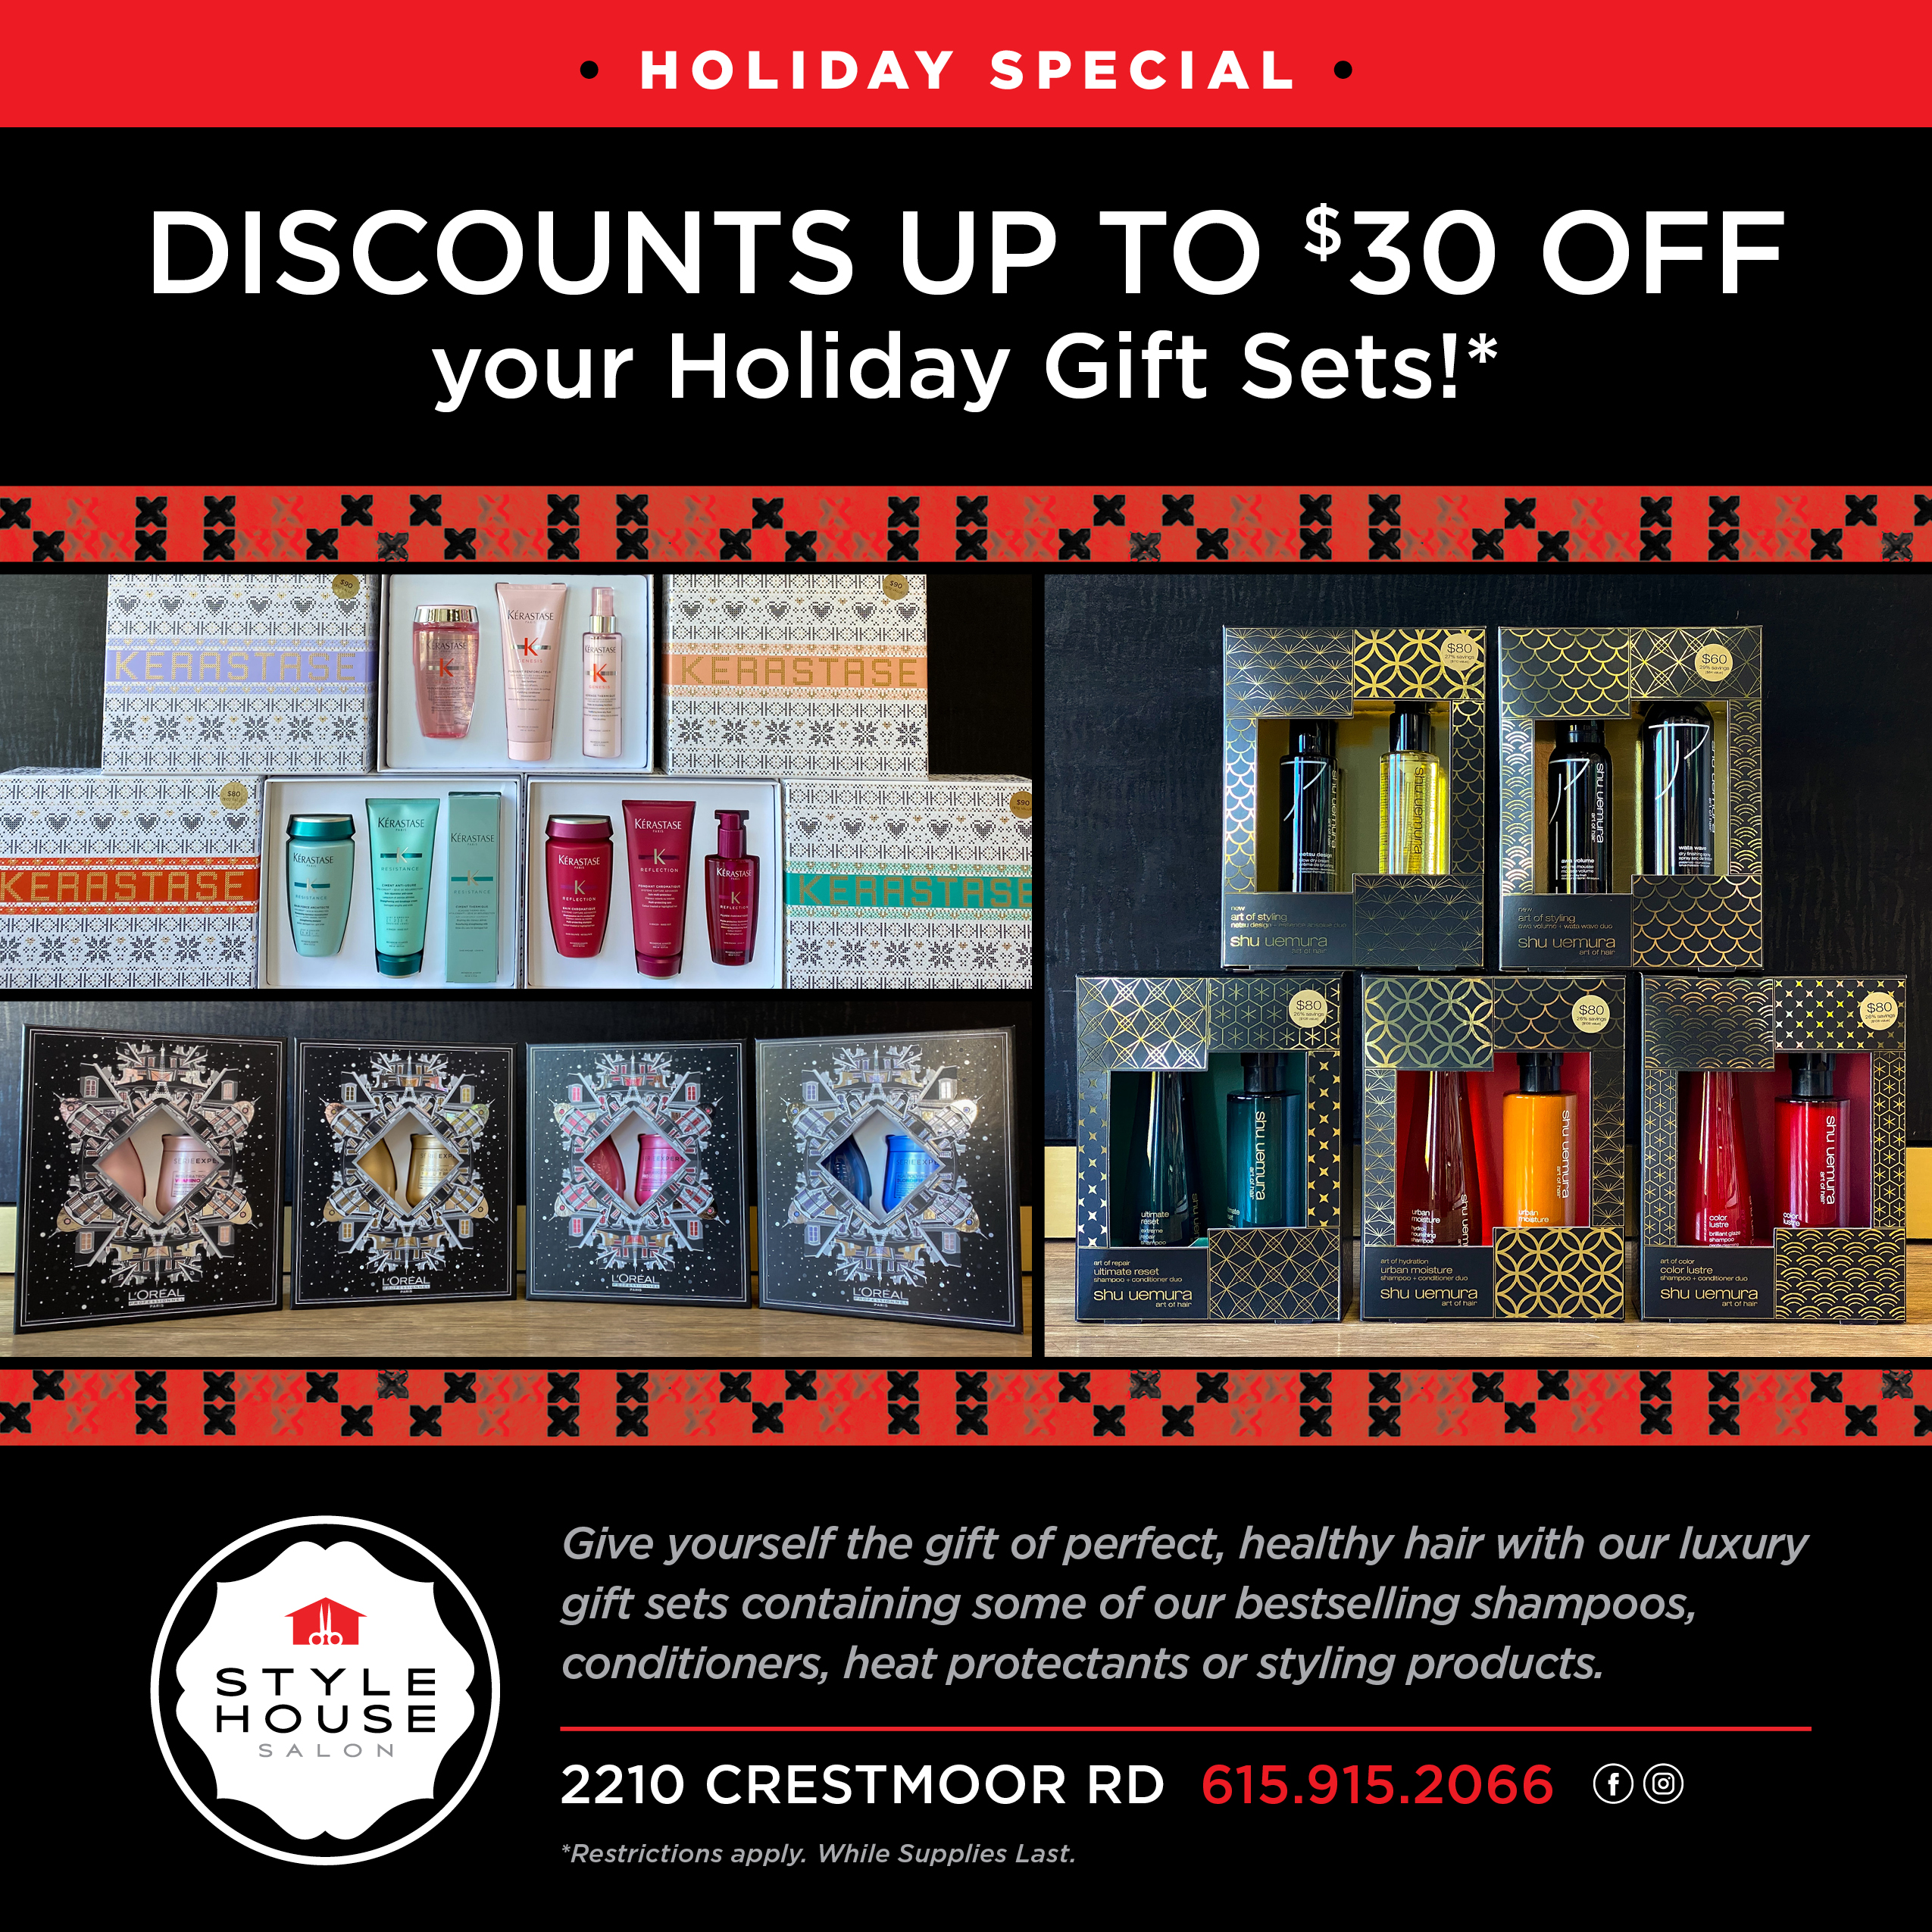 Style House Salon - Holiday Gift Sets!